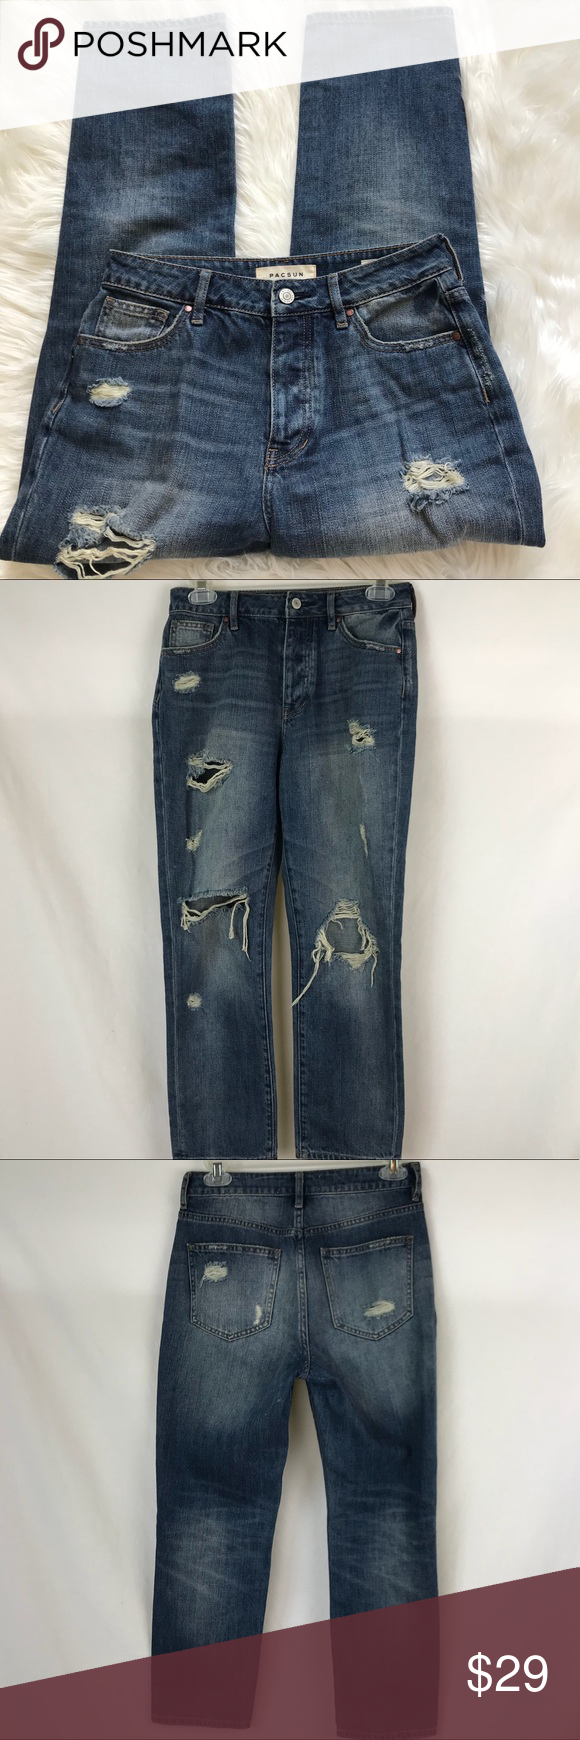 Pacsun Mom Jean Destroyed medium wash PacSun Mom Jeans size